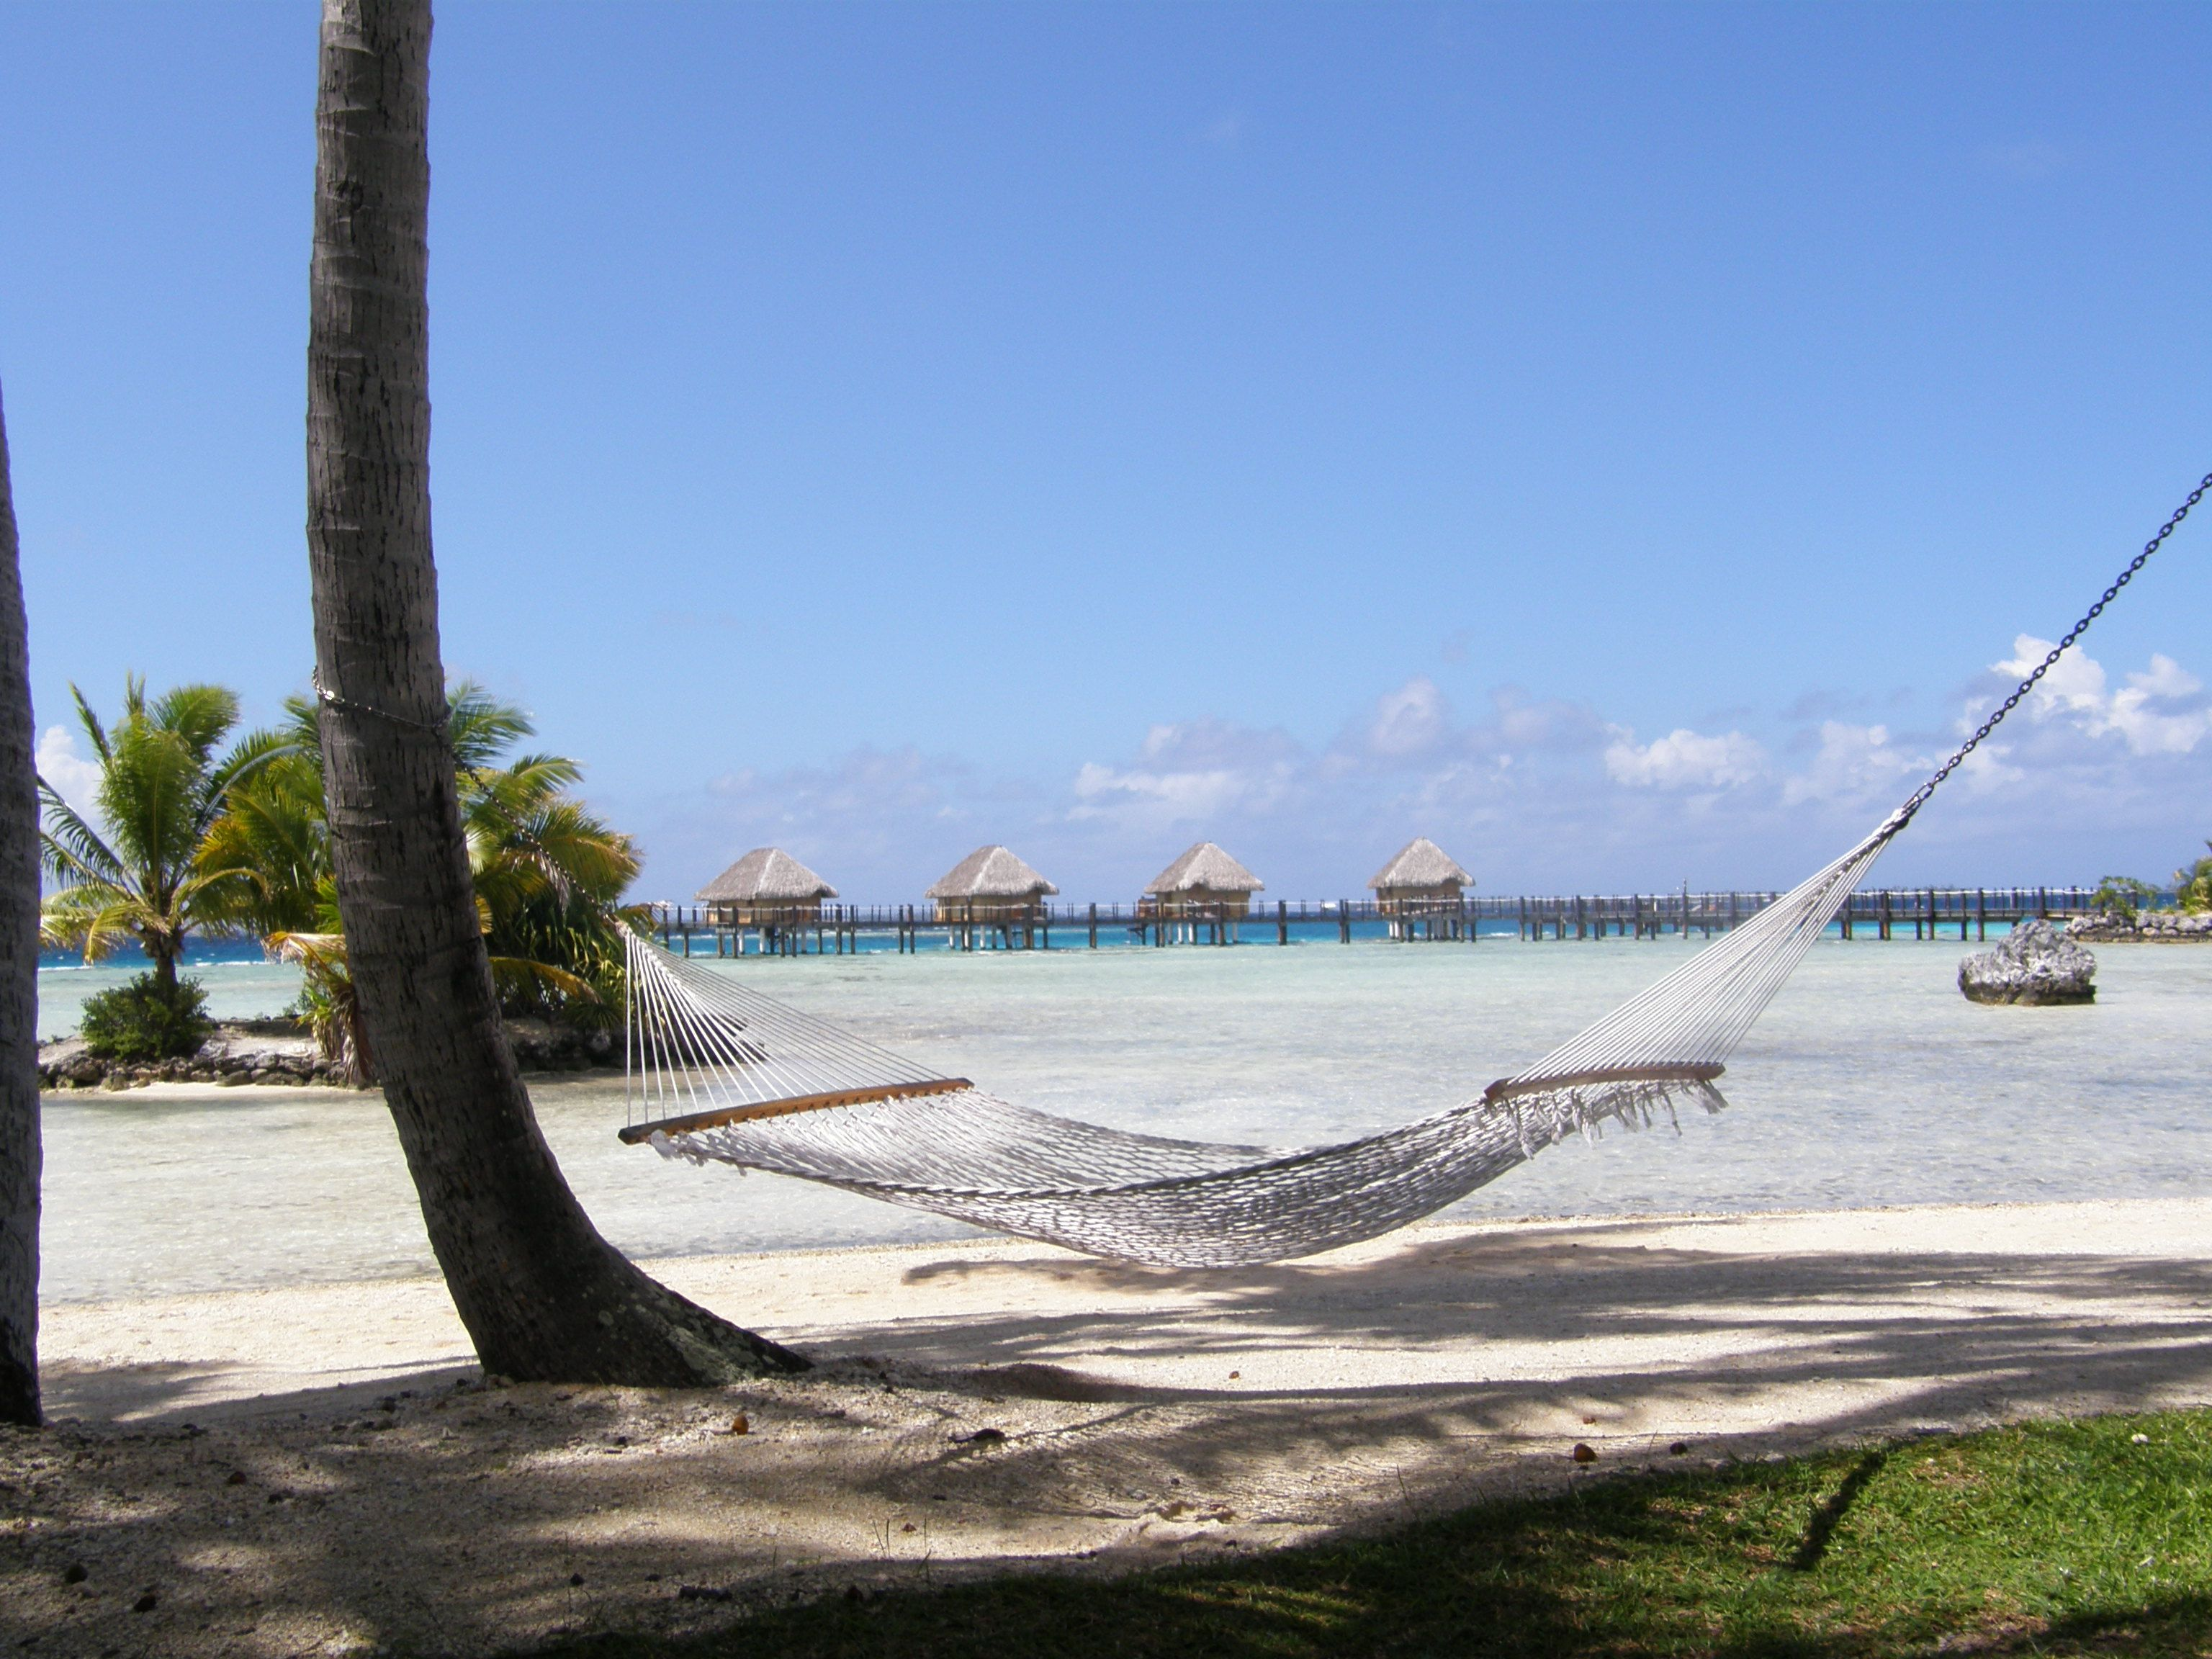 Manihi French Polynesia  City pictures : Manihi, French Polynesia | Places I'd Like to Go | Pinterest